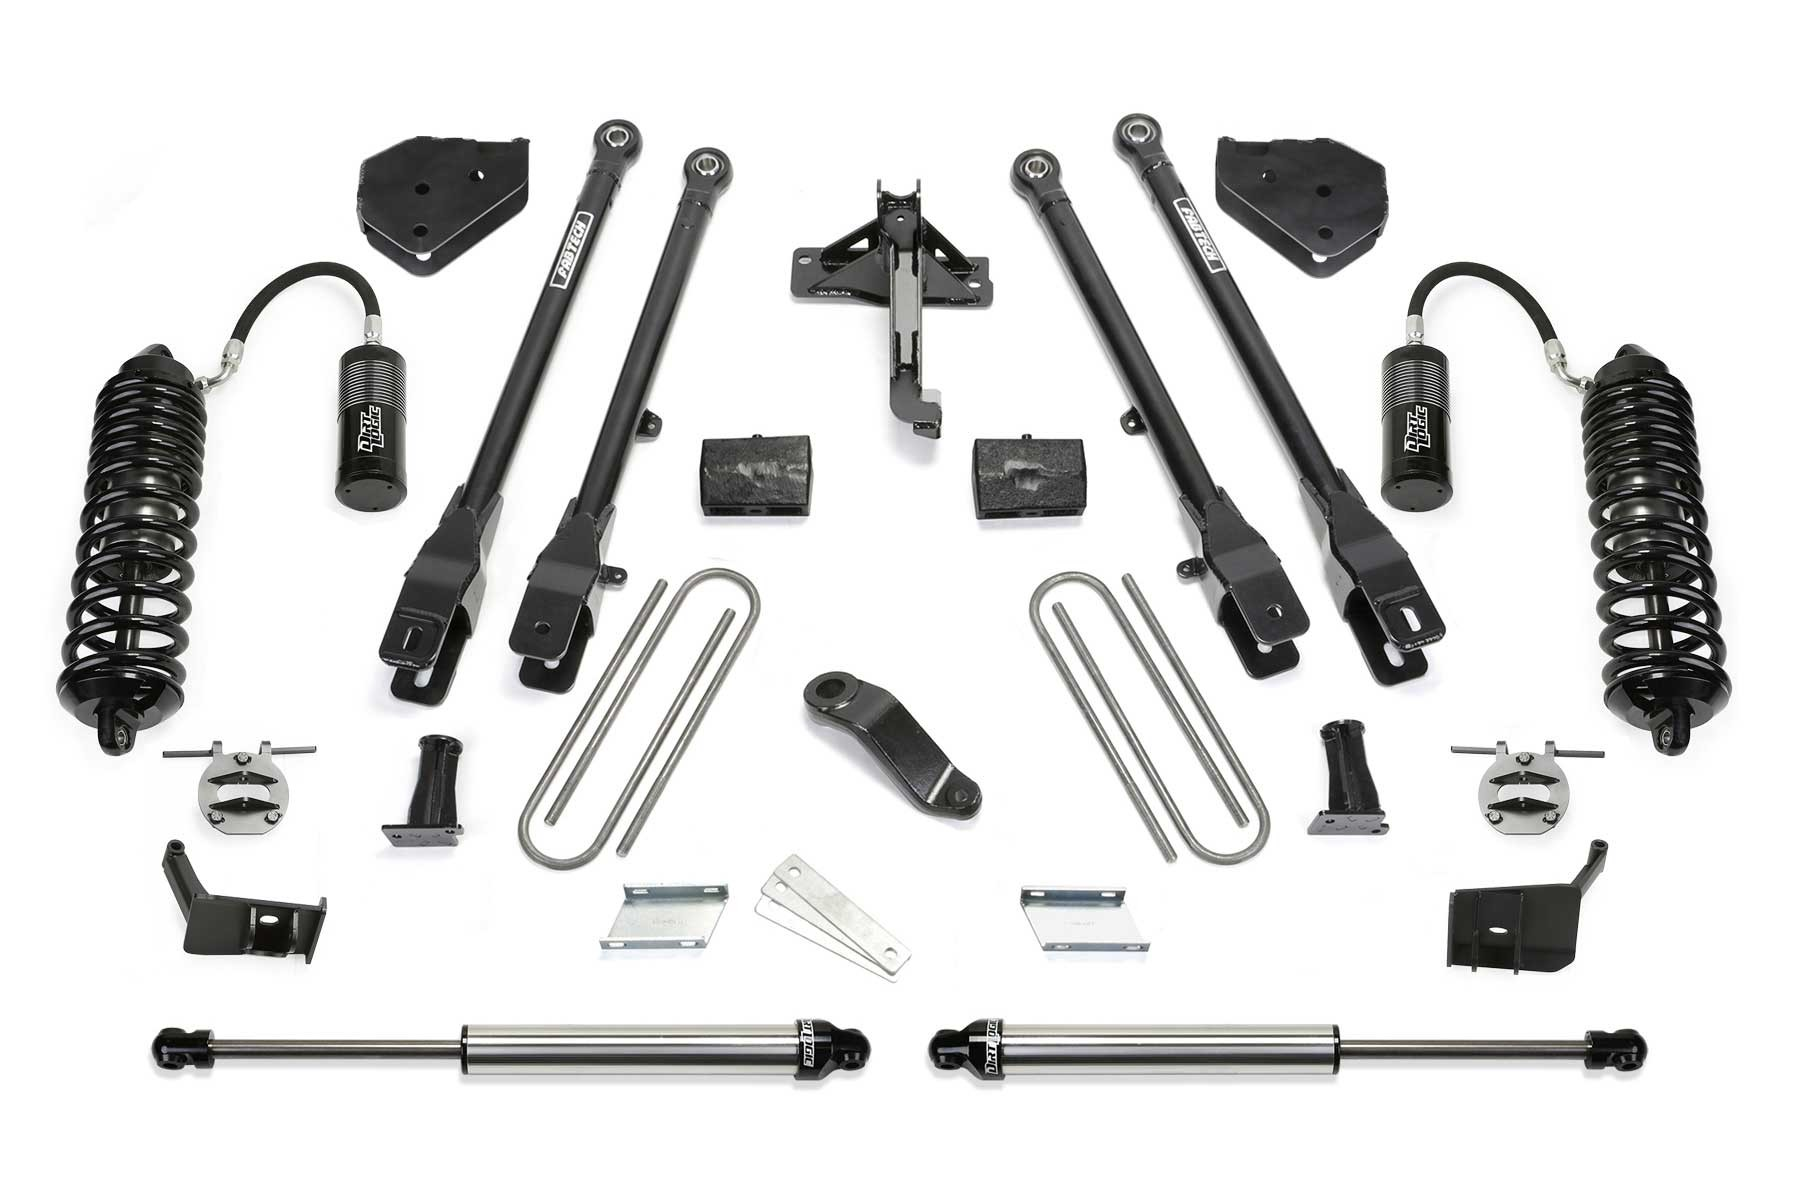 FABTECH 2017  FORD F450 / F550 4WD- 6″ 4 LINK SYSTEM W/ FRONT DIRT LOGIC 4.0 RESI COILOVERS & REAR DIRT LOGIC 2.25 SHOCKS